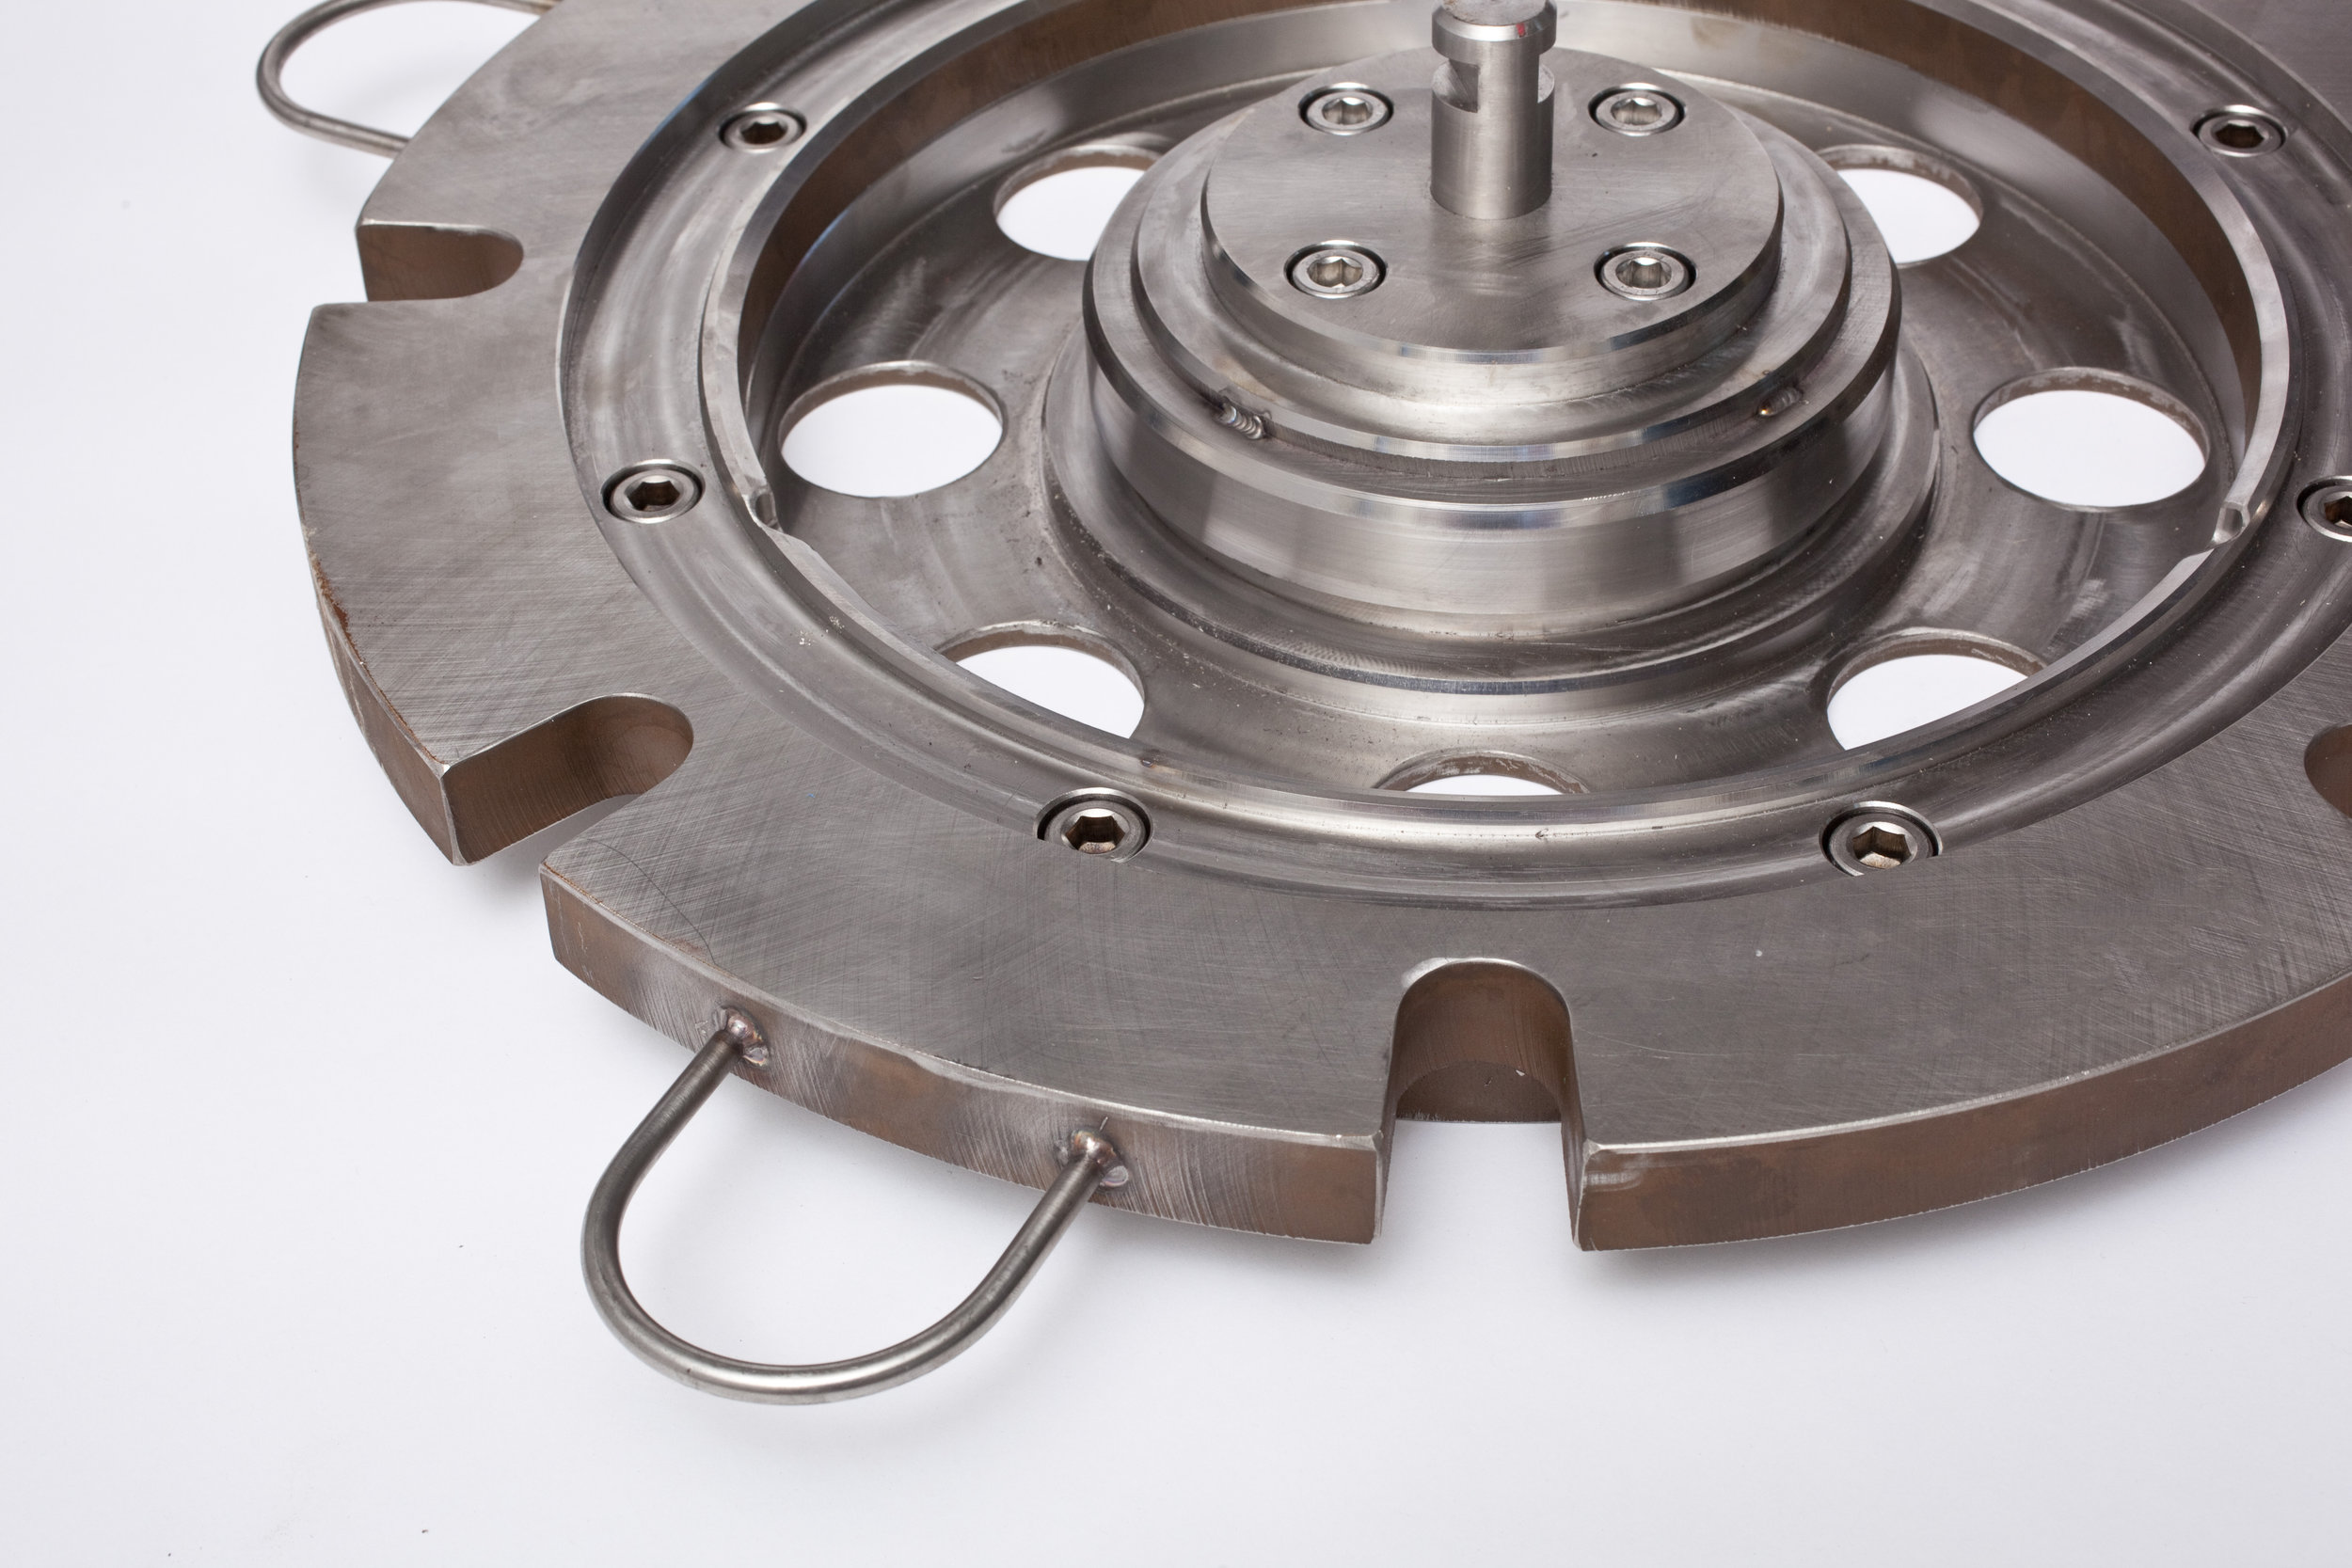 Heat Treat Fixtures - Our heat treat fixtures correct the distortion that results from some casting processes. To achieve this, we build a fixture to replicate the original size and shape of the distorted part. The foundry loads the problem part into our custom fixture, and places it in an oven heated to very high temperatures. The fixture, typically made from 316 stainless steel, expands at a higher rate than the cast part, forcing the casting into its proper shape which is maintained as the part cools.